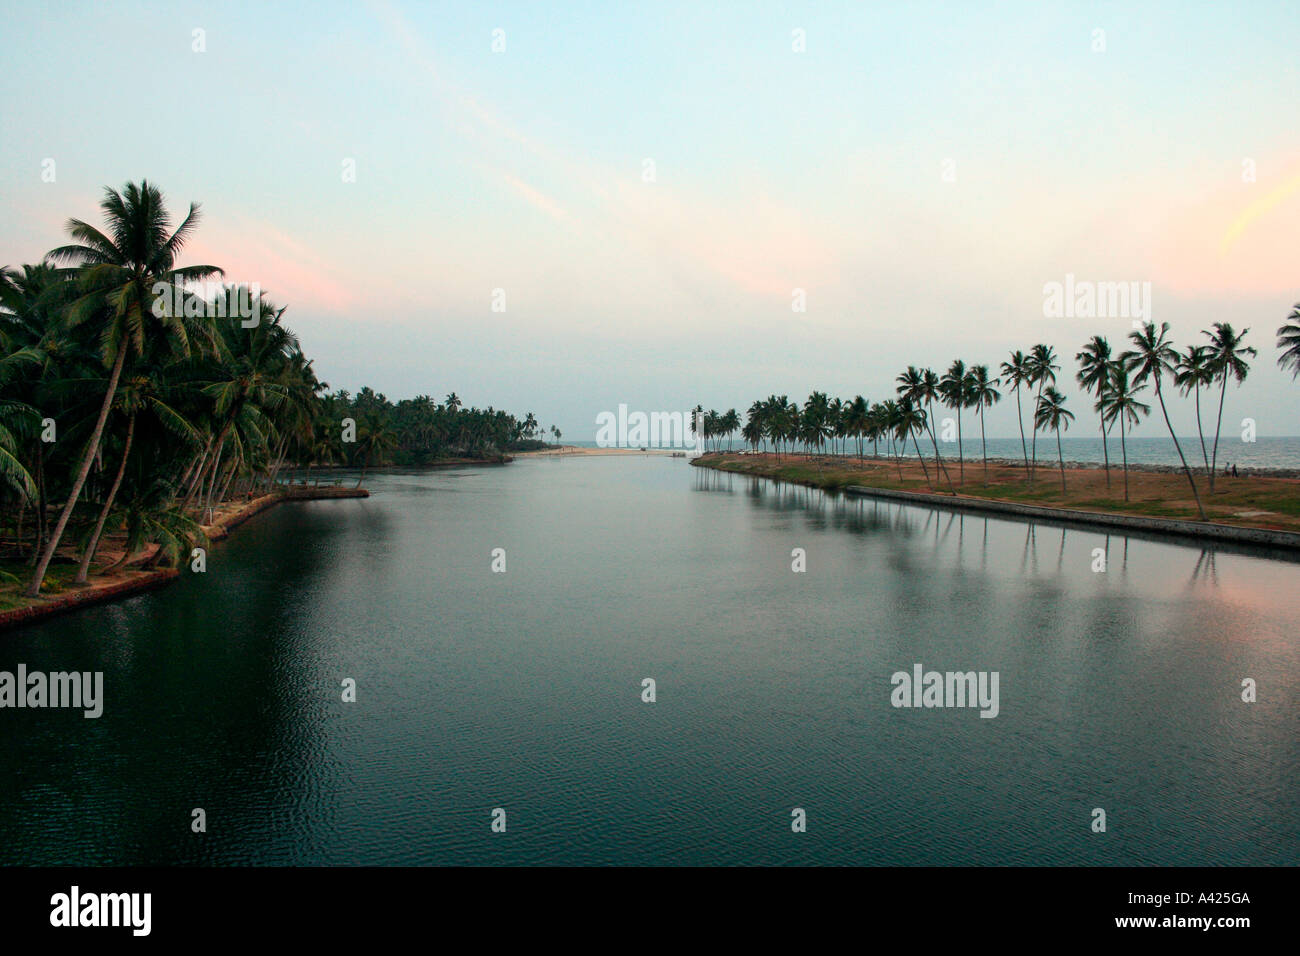 Back waters of Kerala with coast and coconut trees outlined against evening sky - Stock Image